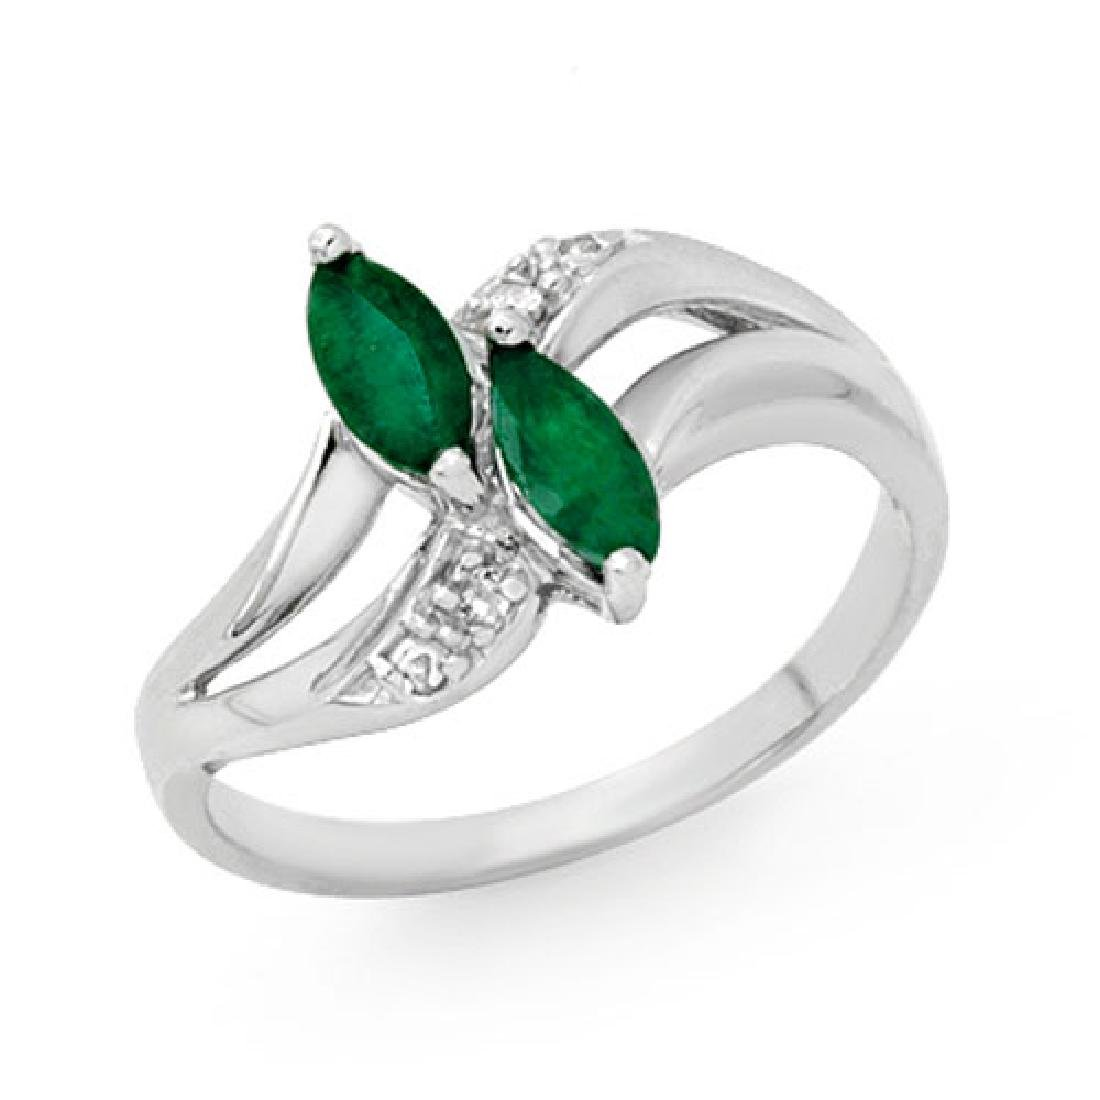 0.45 CTW Emerald & Diamond Ring 18K White Gold